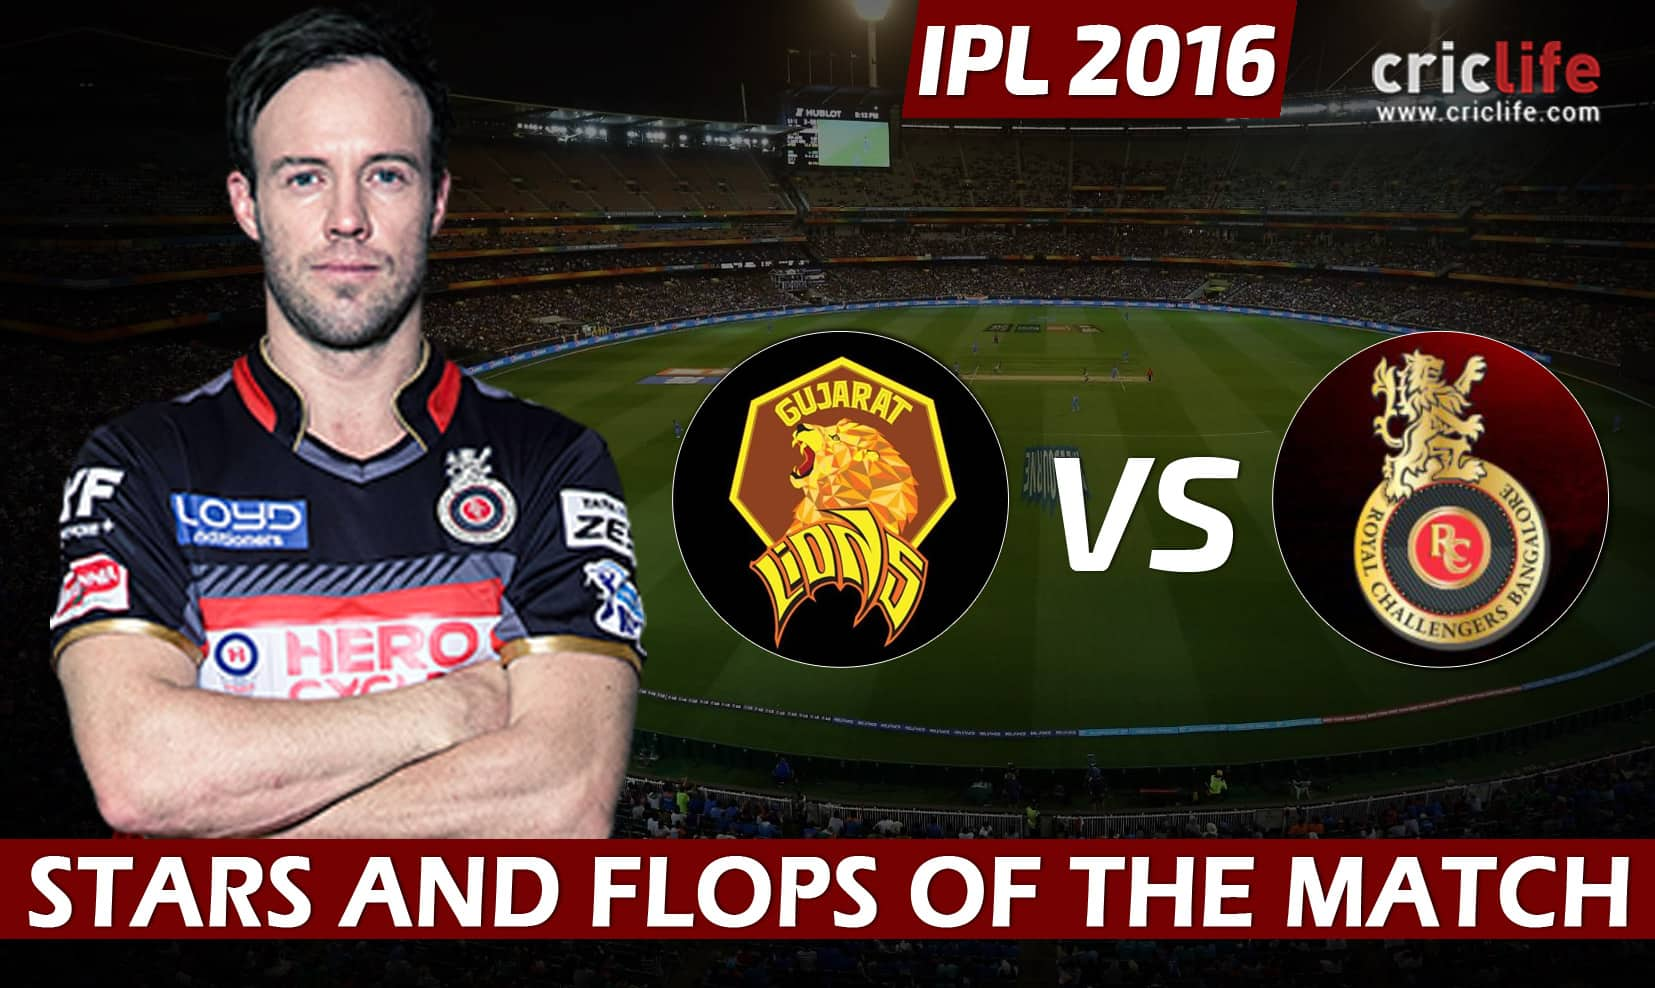 IPL 2016: Royal Challengers Bangalore beats Gujarat Lions by 4 wickets at Bengaluru, Stars and Flops